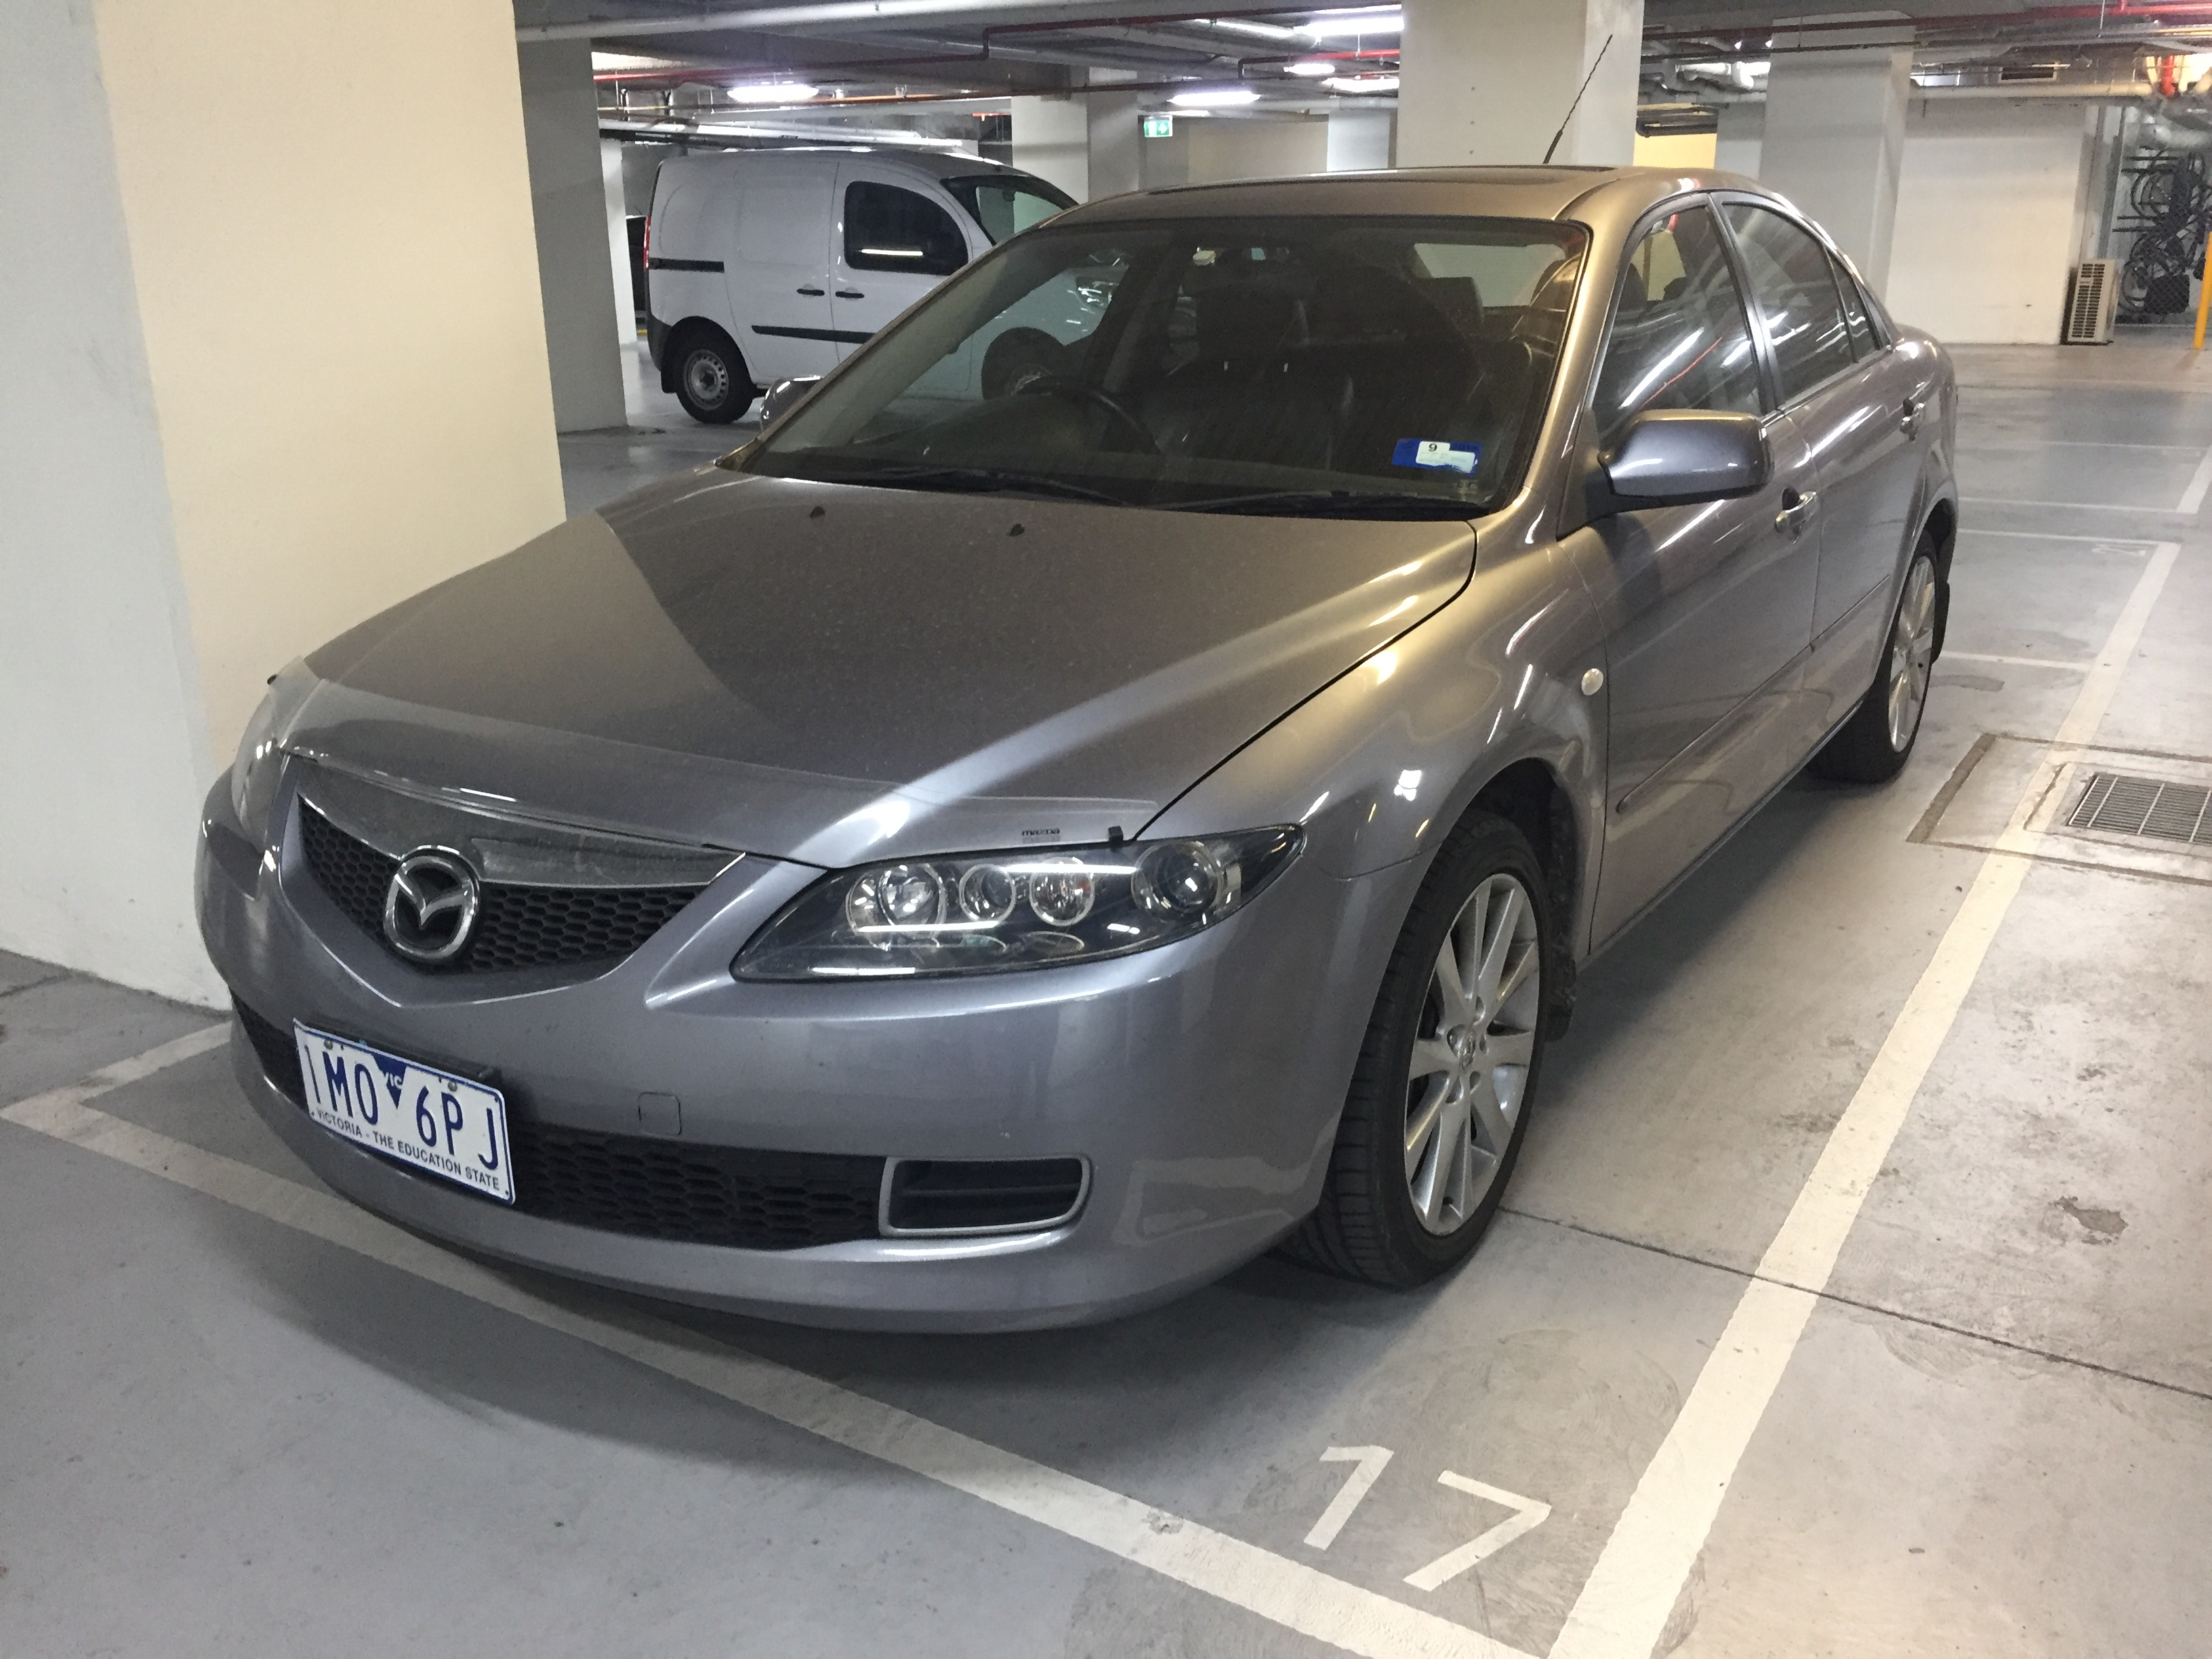 Picture of Alison's 2006 Mazda 6